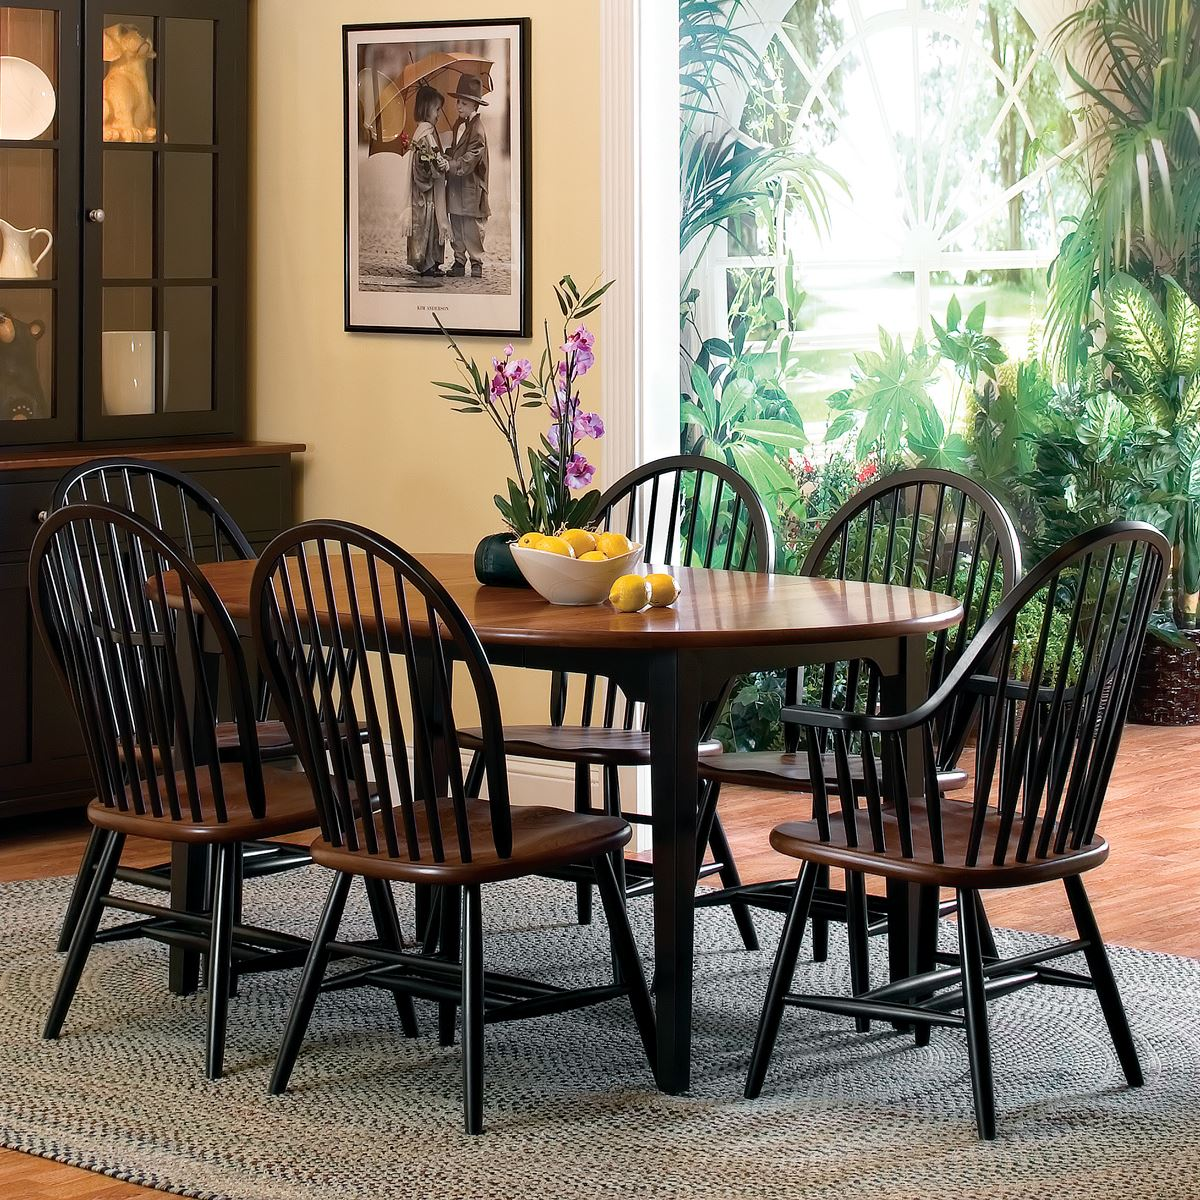 8 Spindle Chair Dining Set